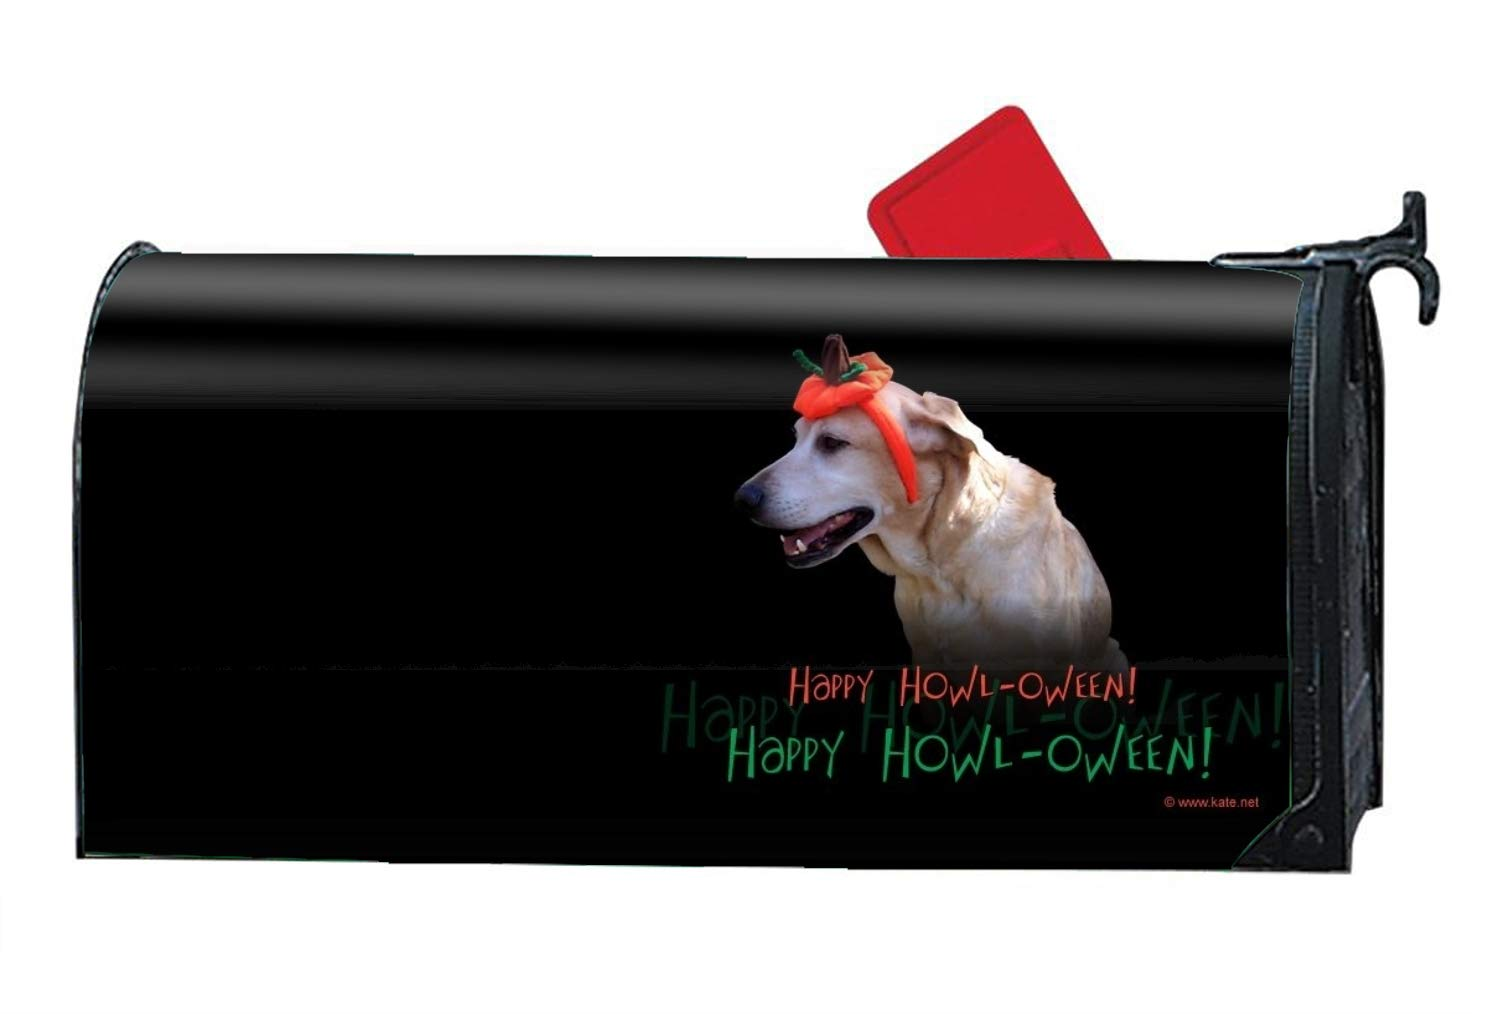 Niaocpwy Holiday Halloween Dog Mailbox Makeover Decorative Printed Magnetic Cover for Large Mailboxes